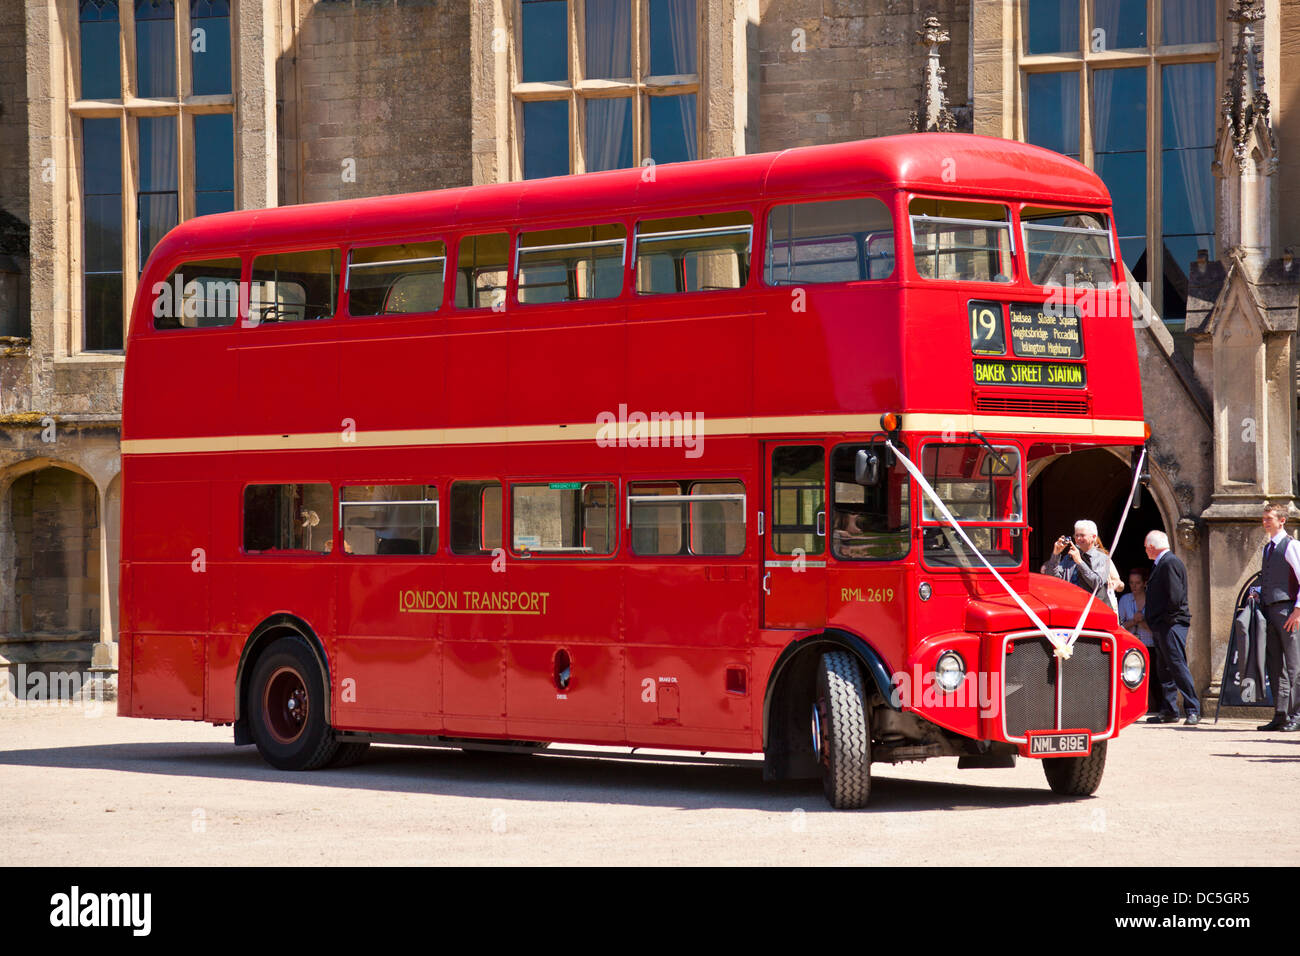 red London bus a routemaster outside Newstead Abbey Historic House Ravenshead Newstead Nottinghamshire England UK - Stock Image